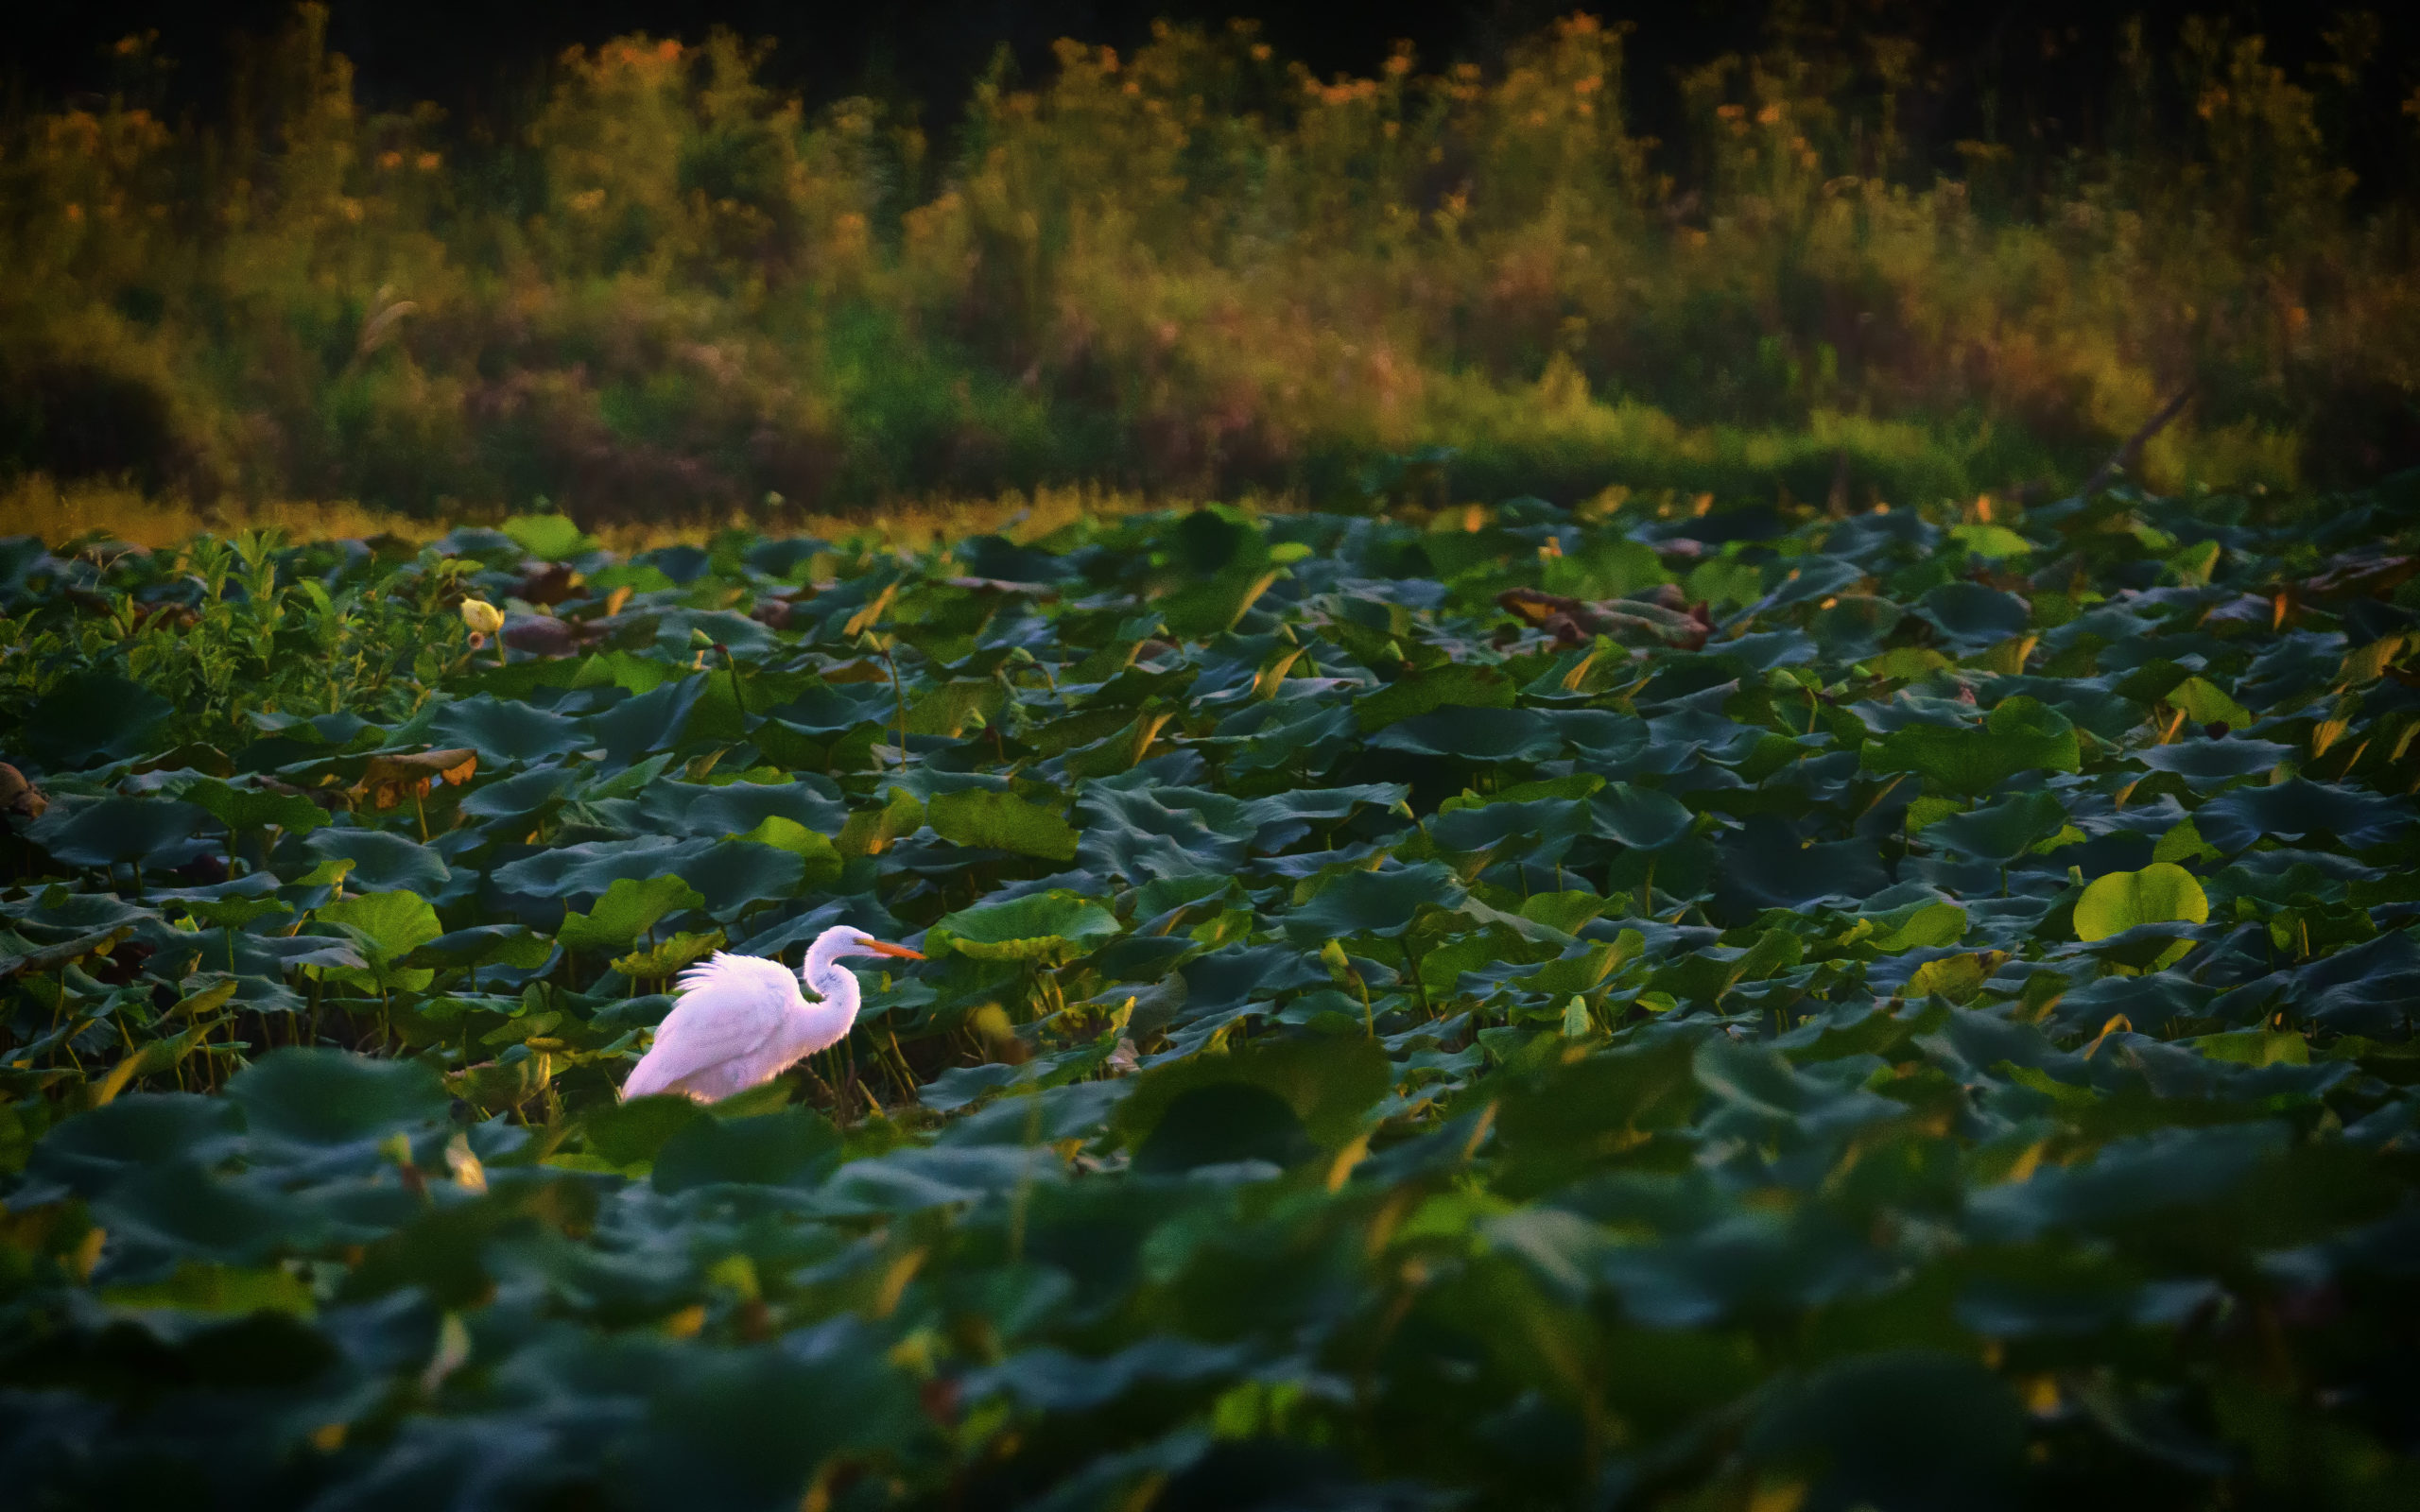 A white bird stands in a wetland.